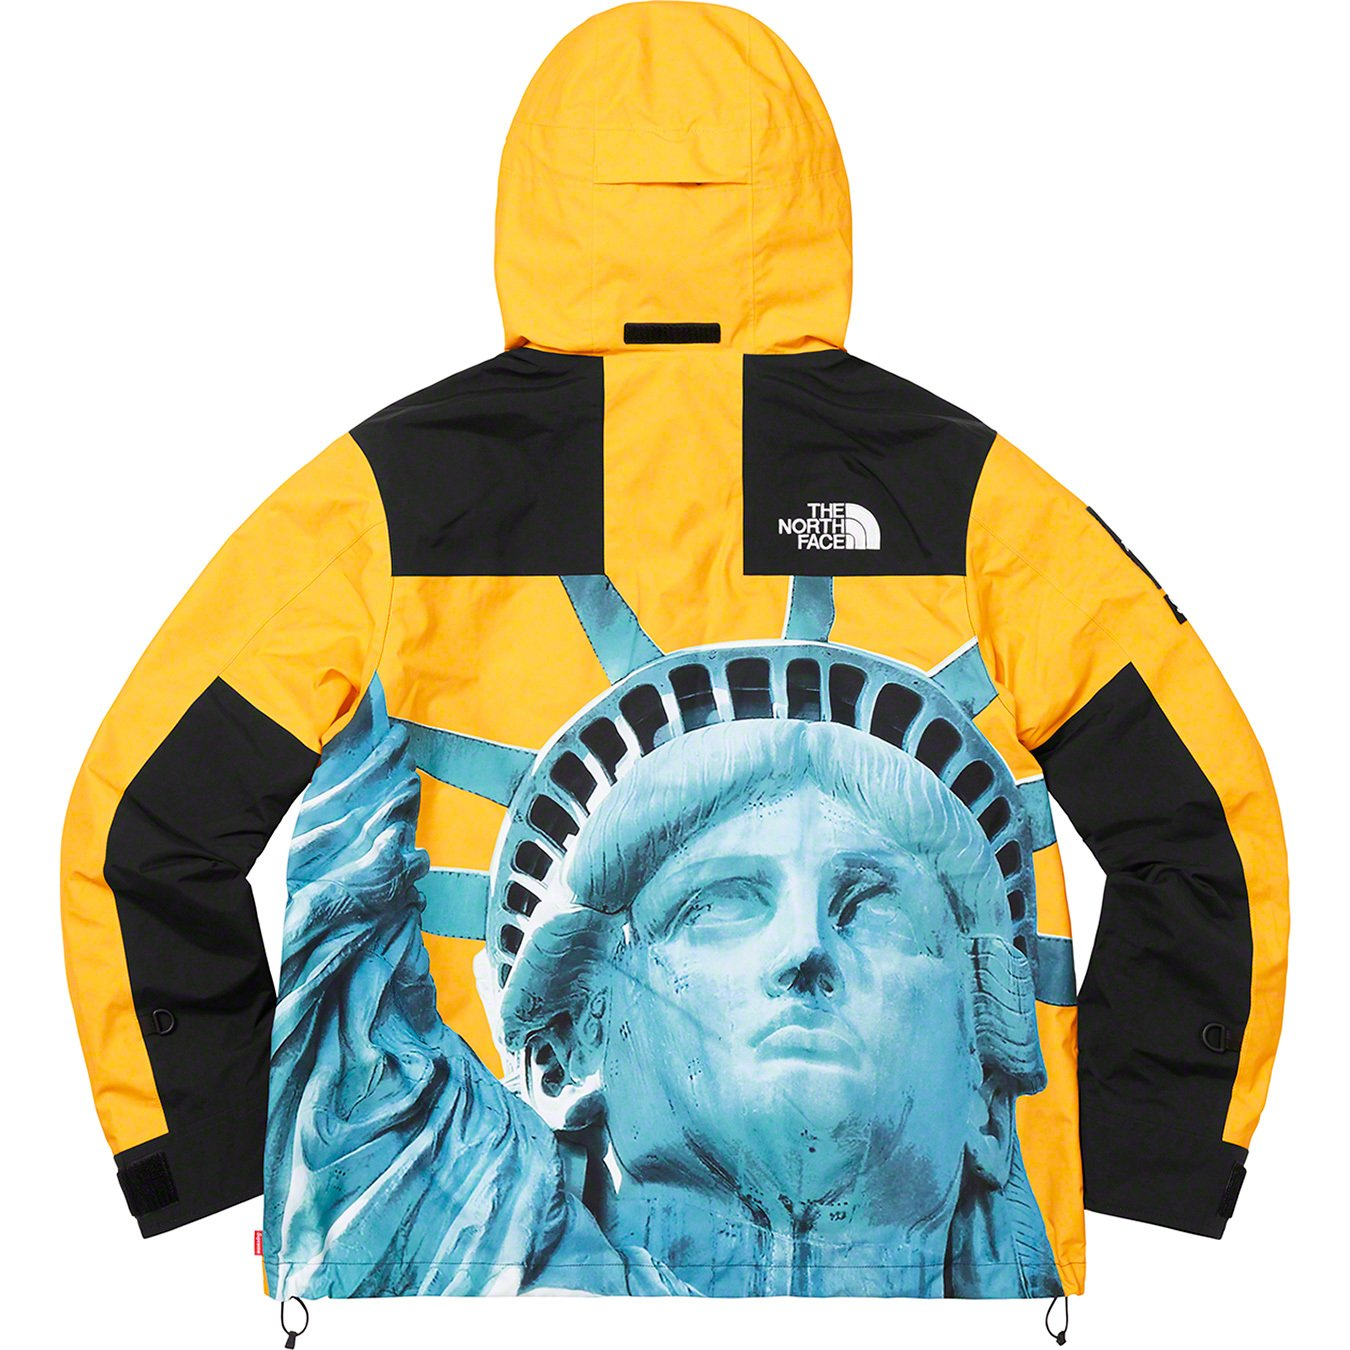 supreme-the-north-face-19aw-19fw-release-20191102-week10-statue-of-liberty-mountain-jacket